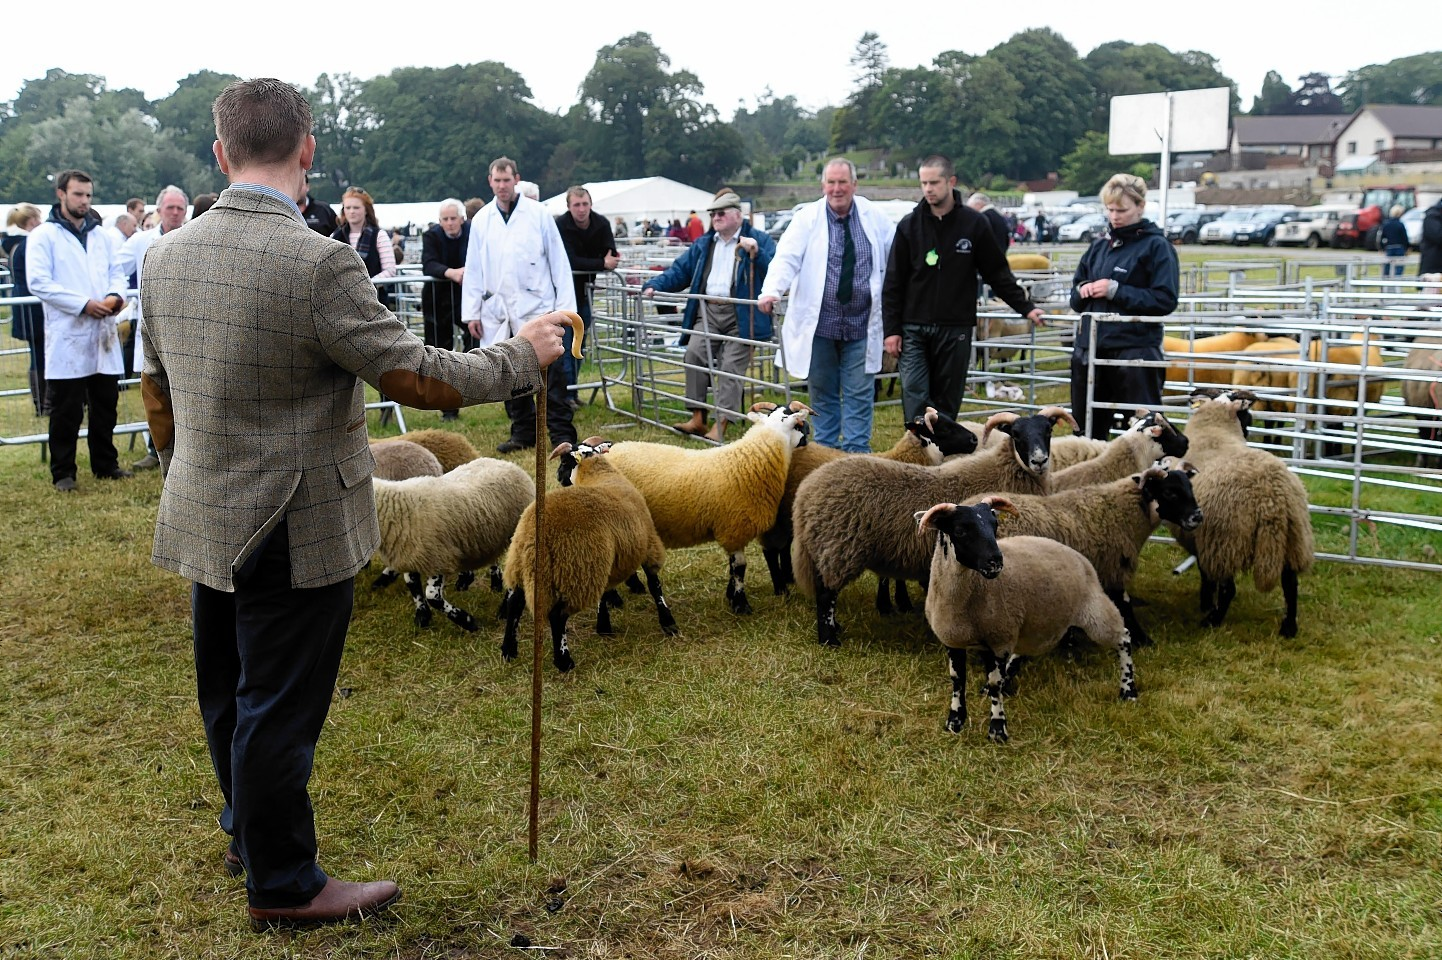 TURRIFF SHOW(DUNCAN BROWN)JUDGING THE HORNED SHEEP